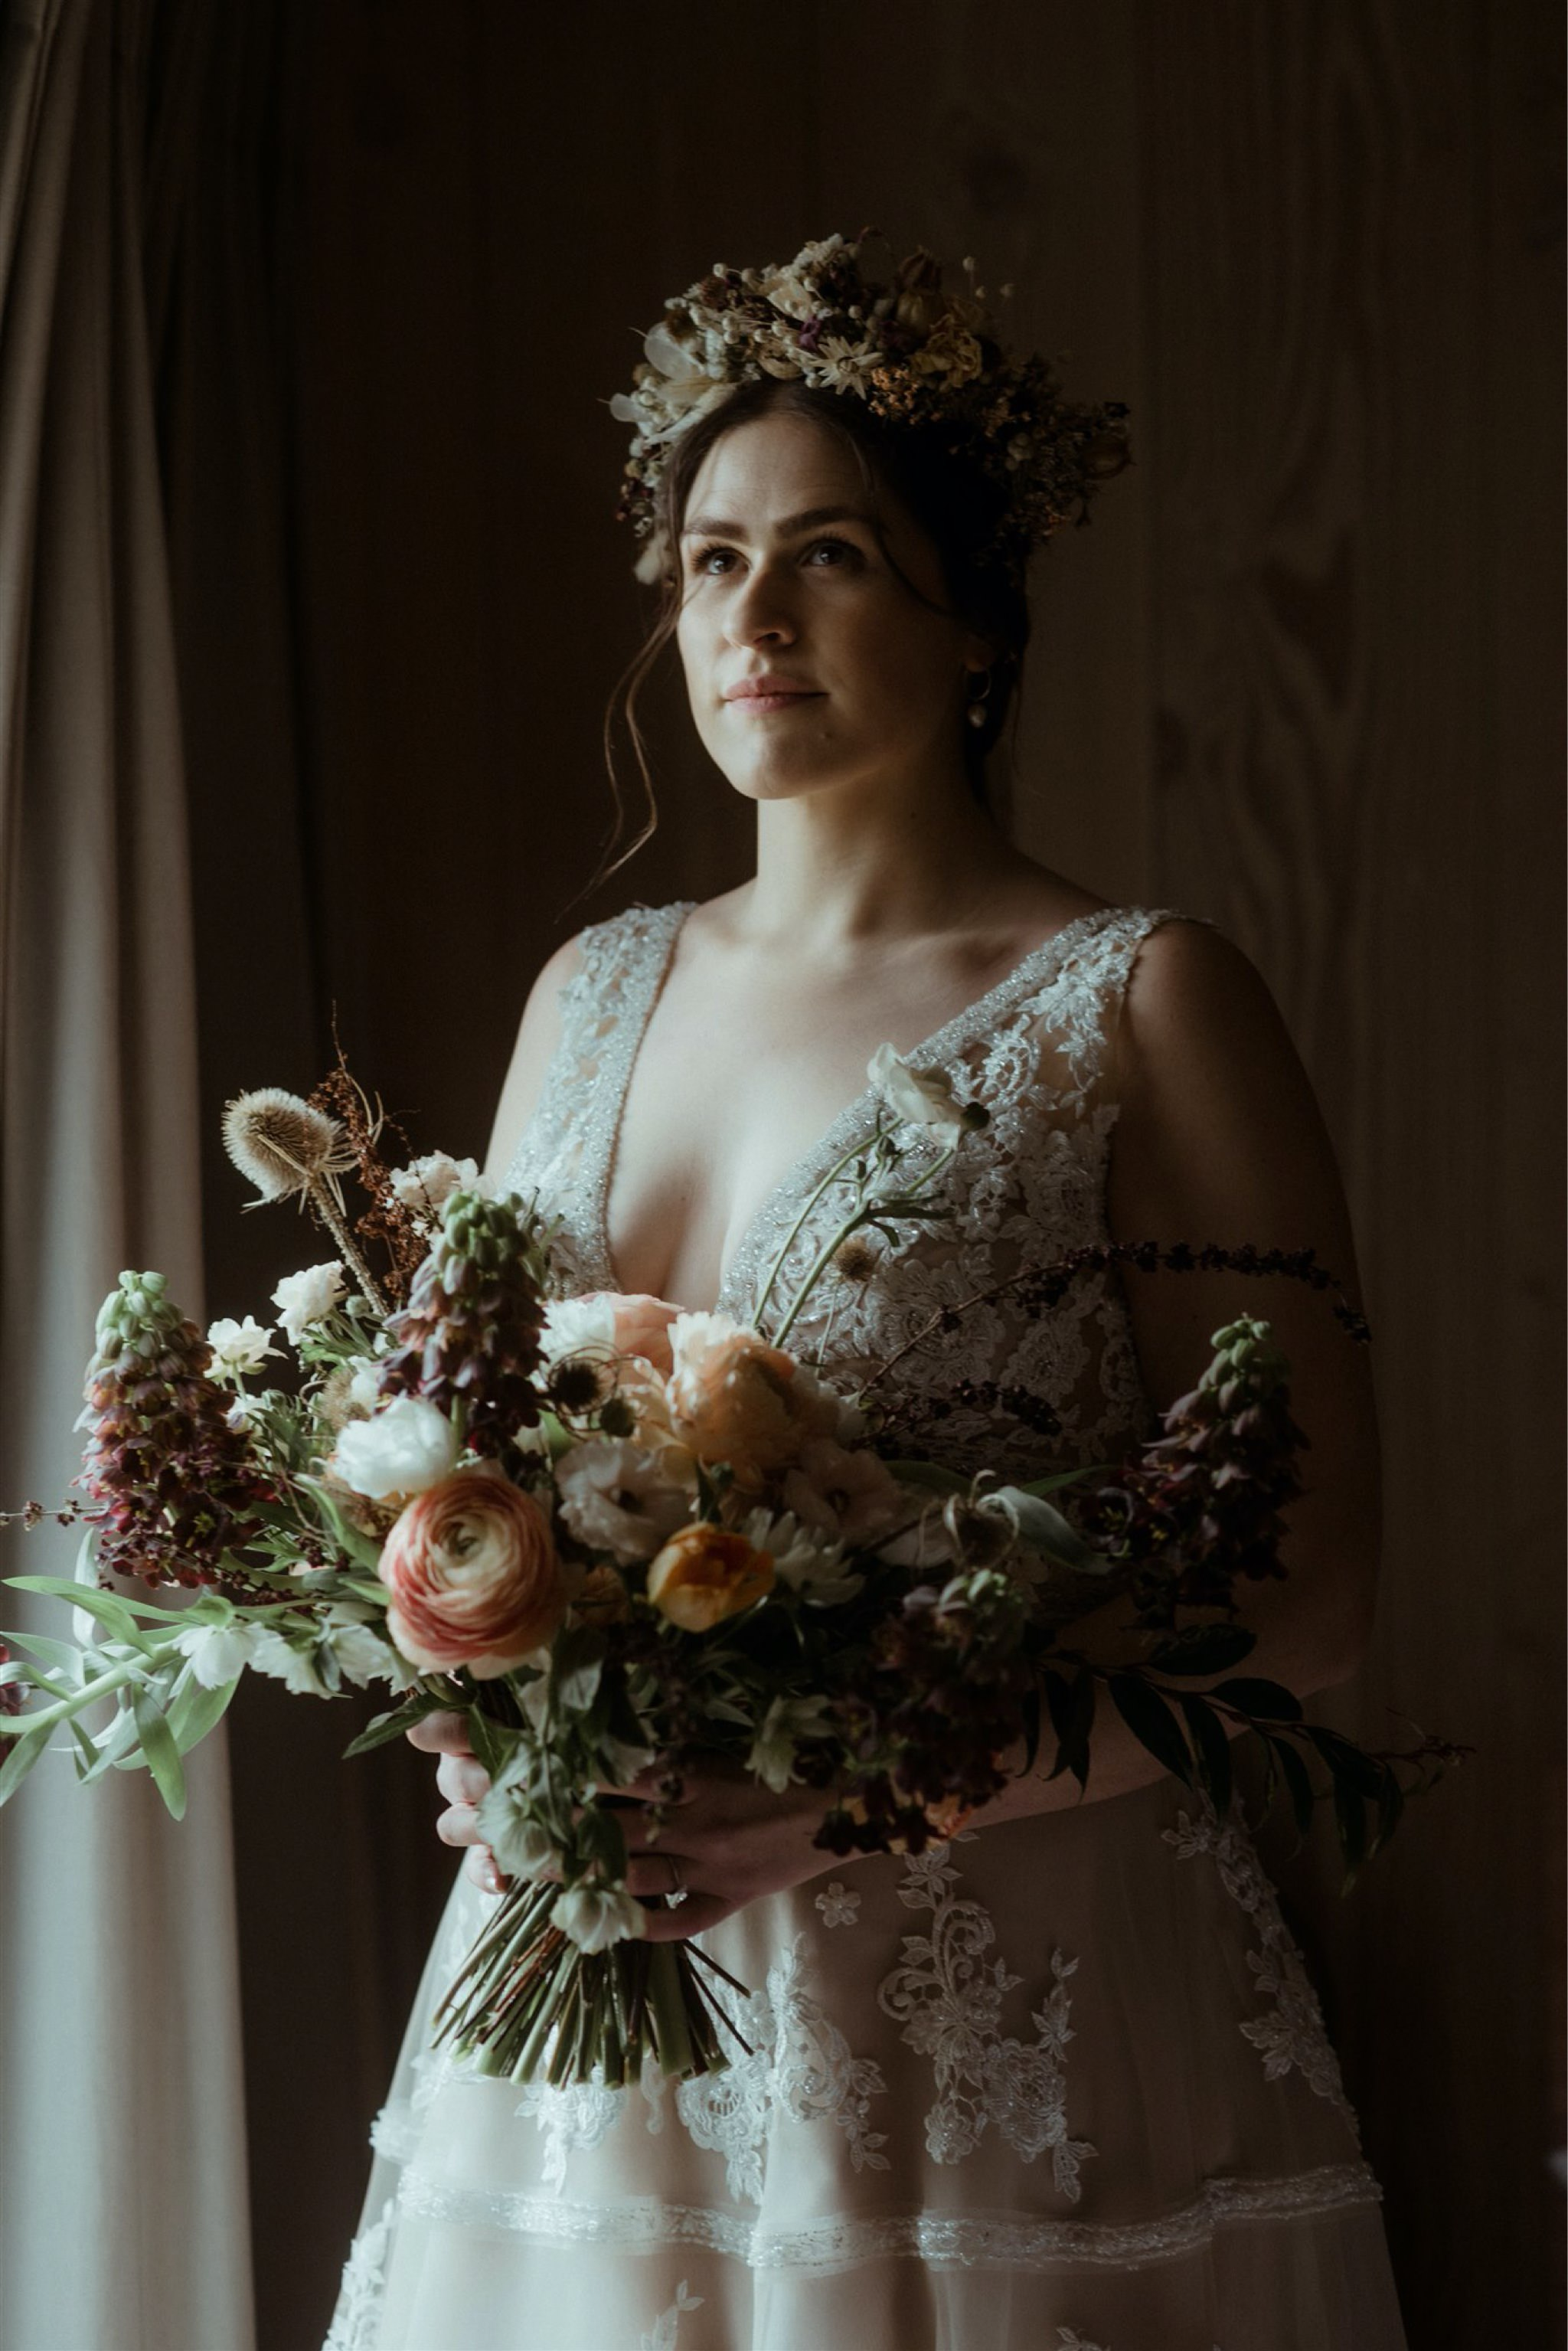 Bride with bouquet ready for her elopement wedding in Assynt, Scotland